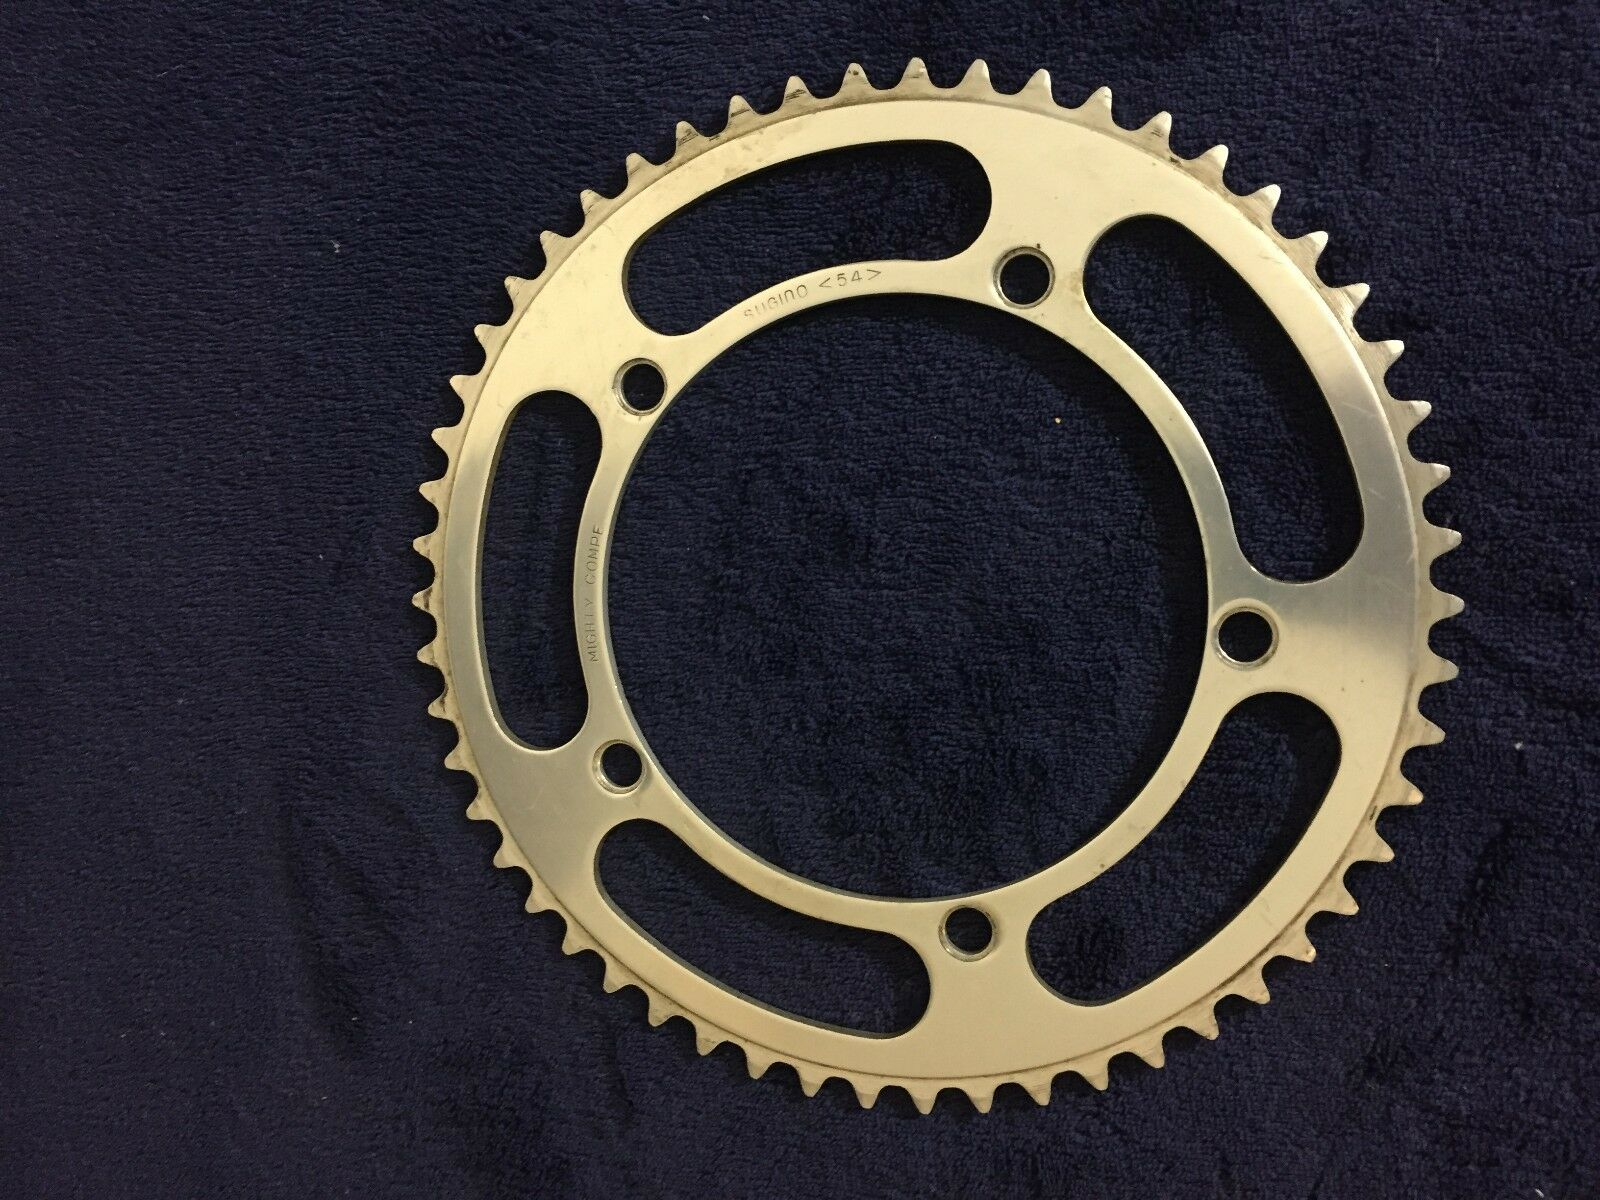 Vintage Sugino Mighty Compe 54t chainring 144 BCD